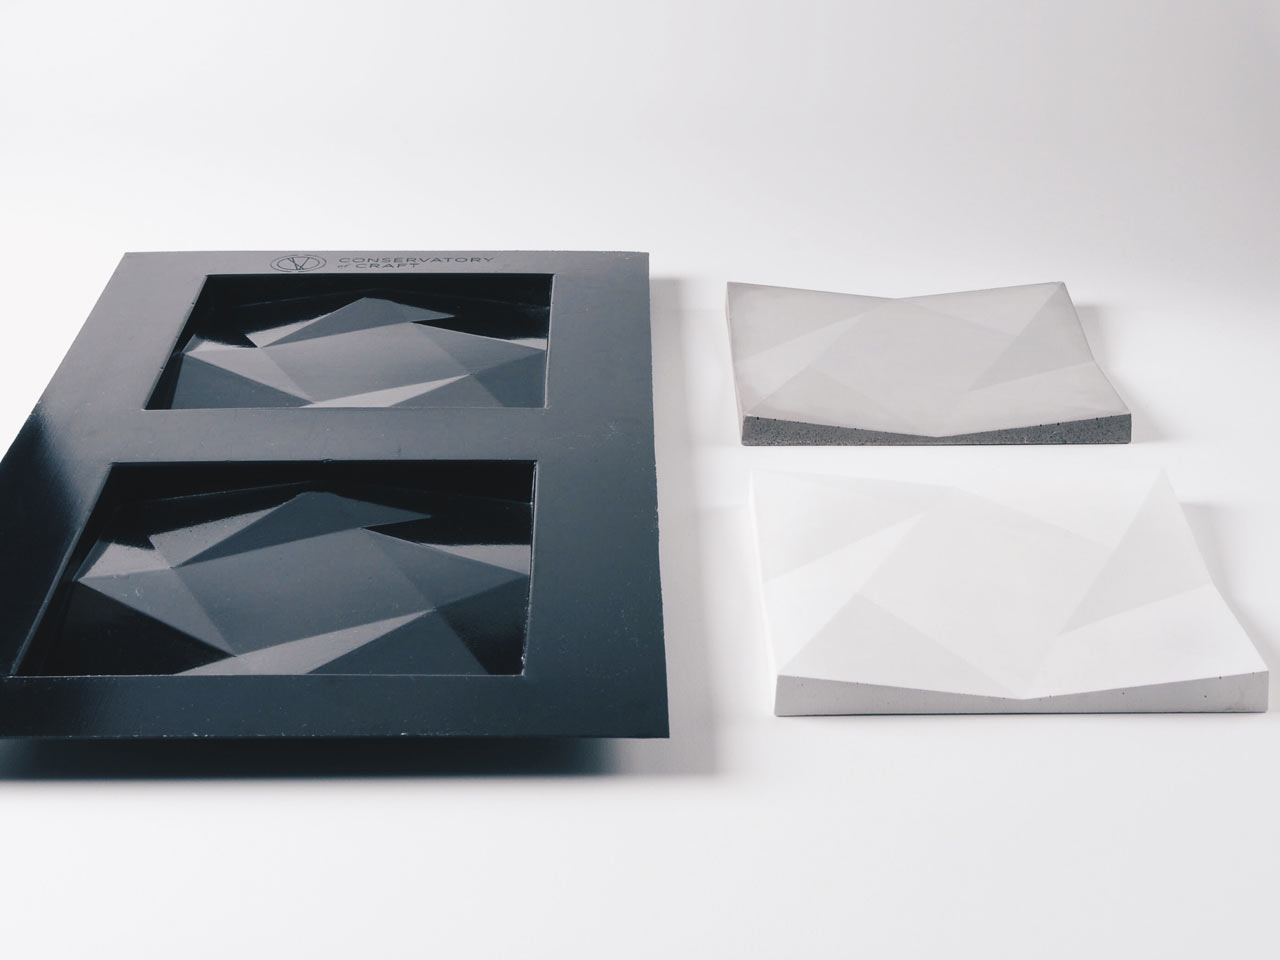 Geometric Concrete Tile Kits by Conservatory of Craft